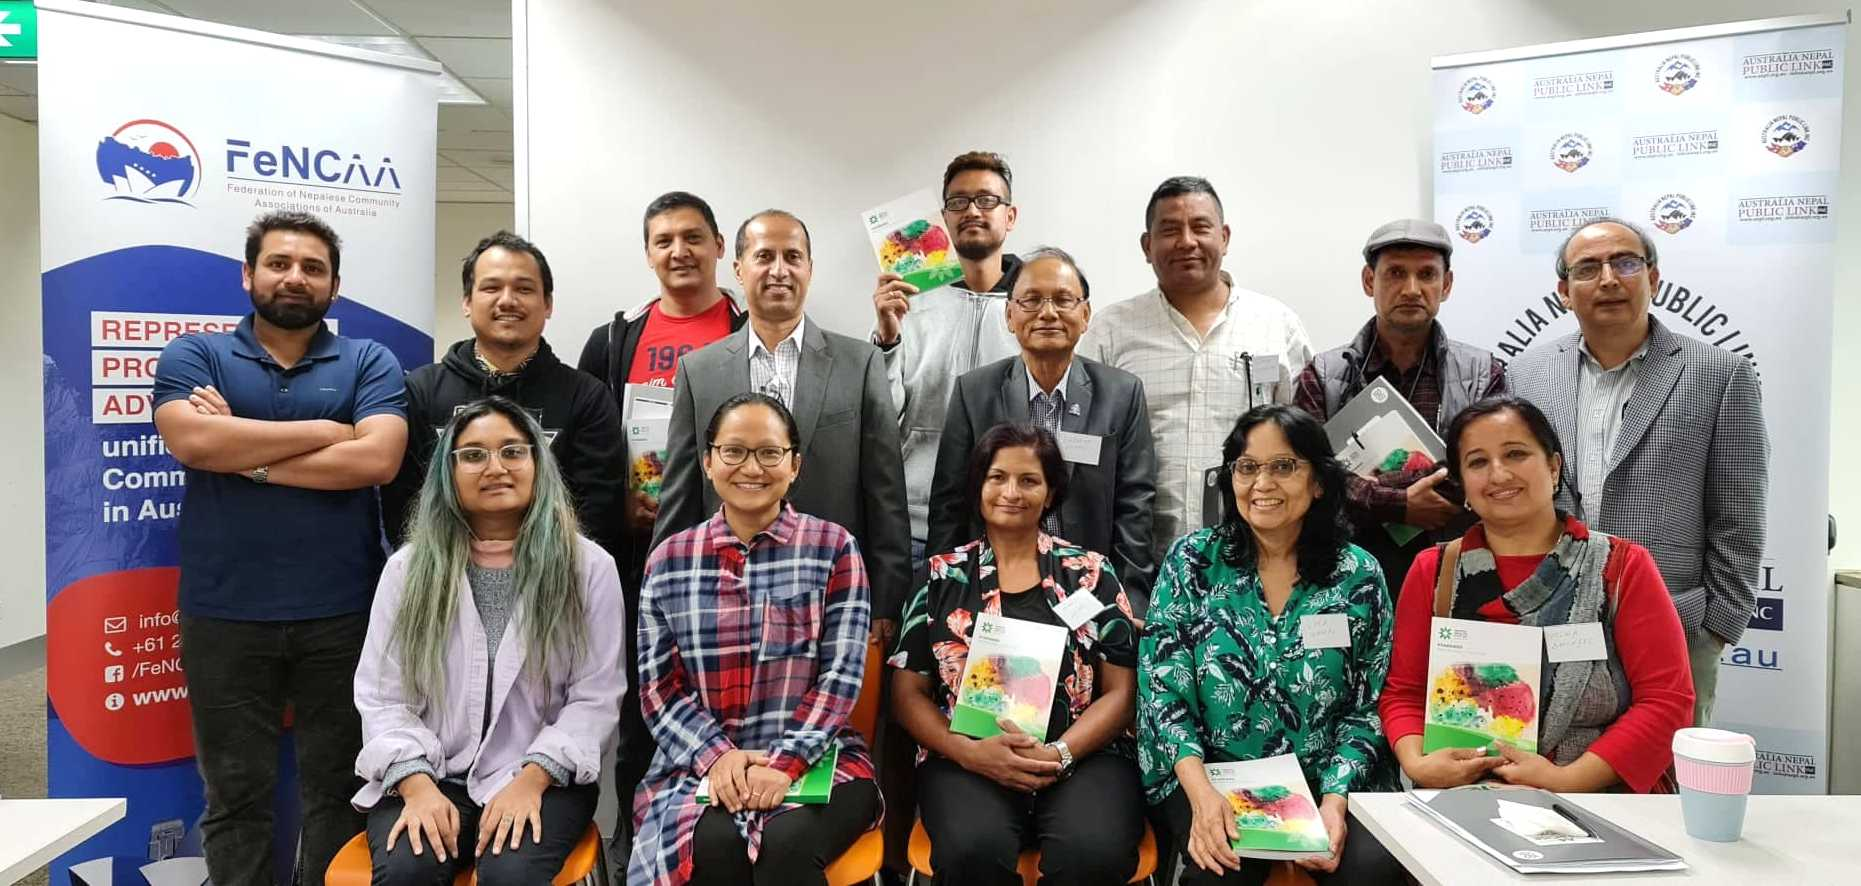 Nepalese Community Members from Canberra attending Mental Health First Aid Training jointly organised by Australia Nepal Public Link (ANPL) and Federation of Nepalese Community Associations of Australia Inc. (FeNCAA)